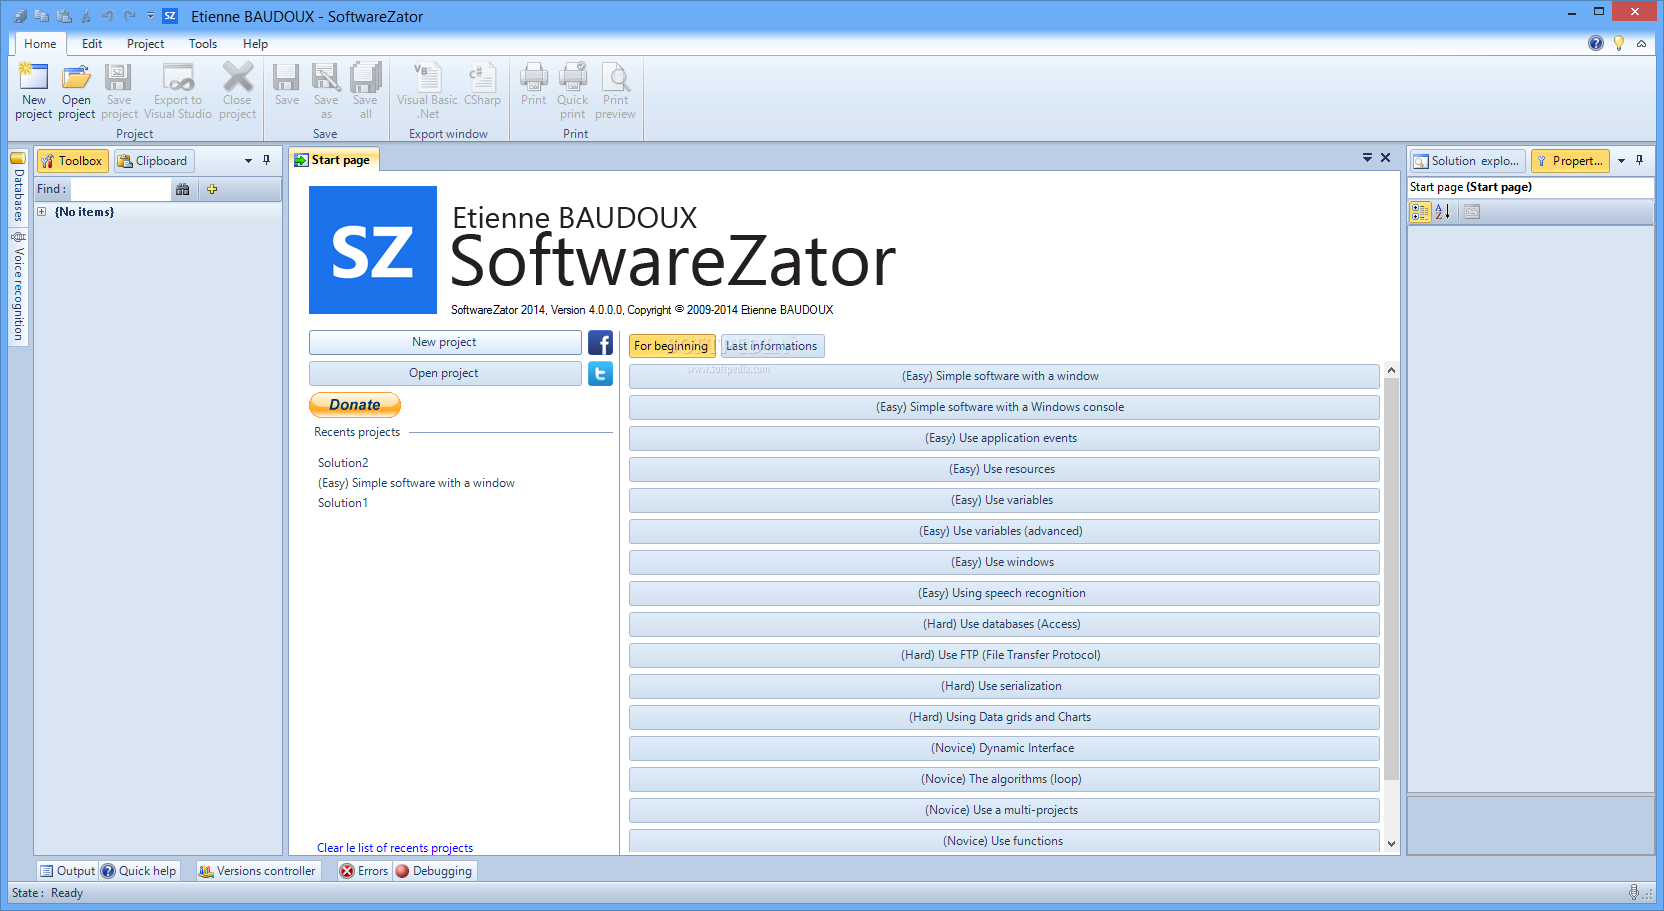 softwarezator 2014